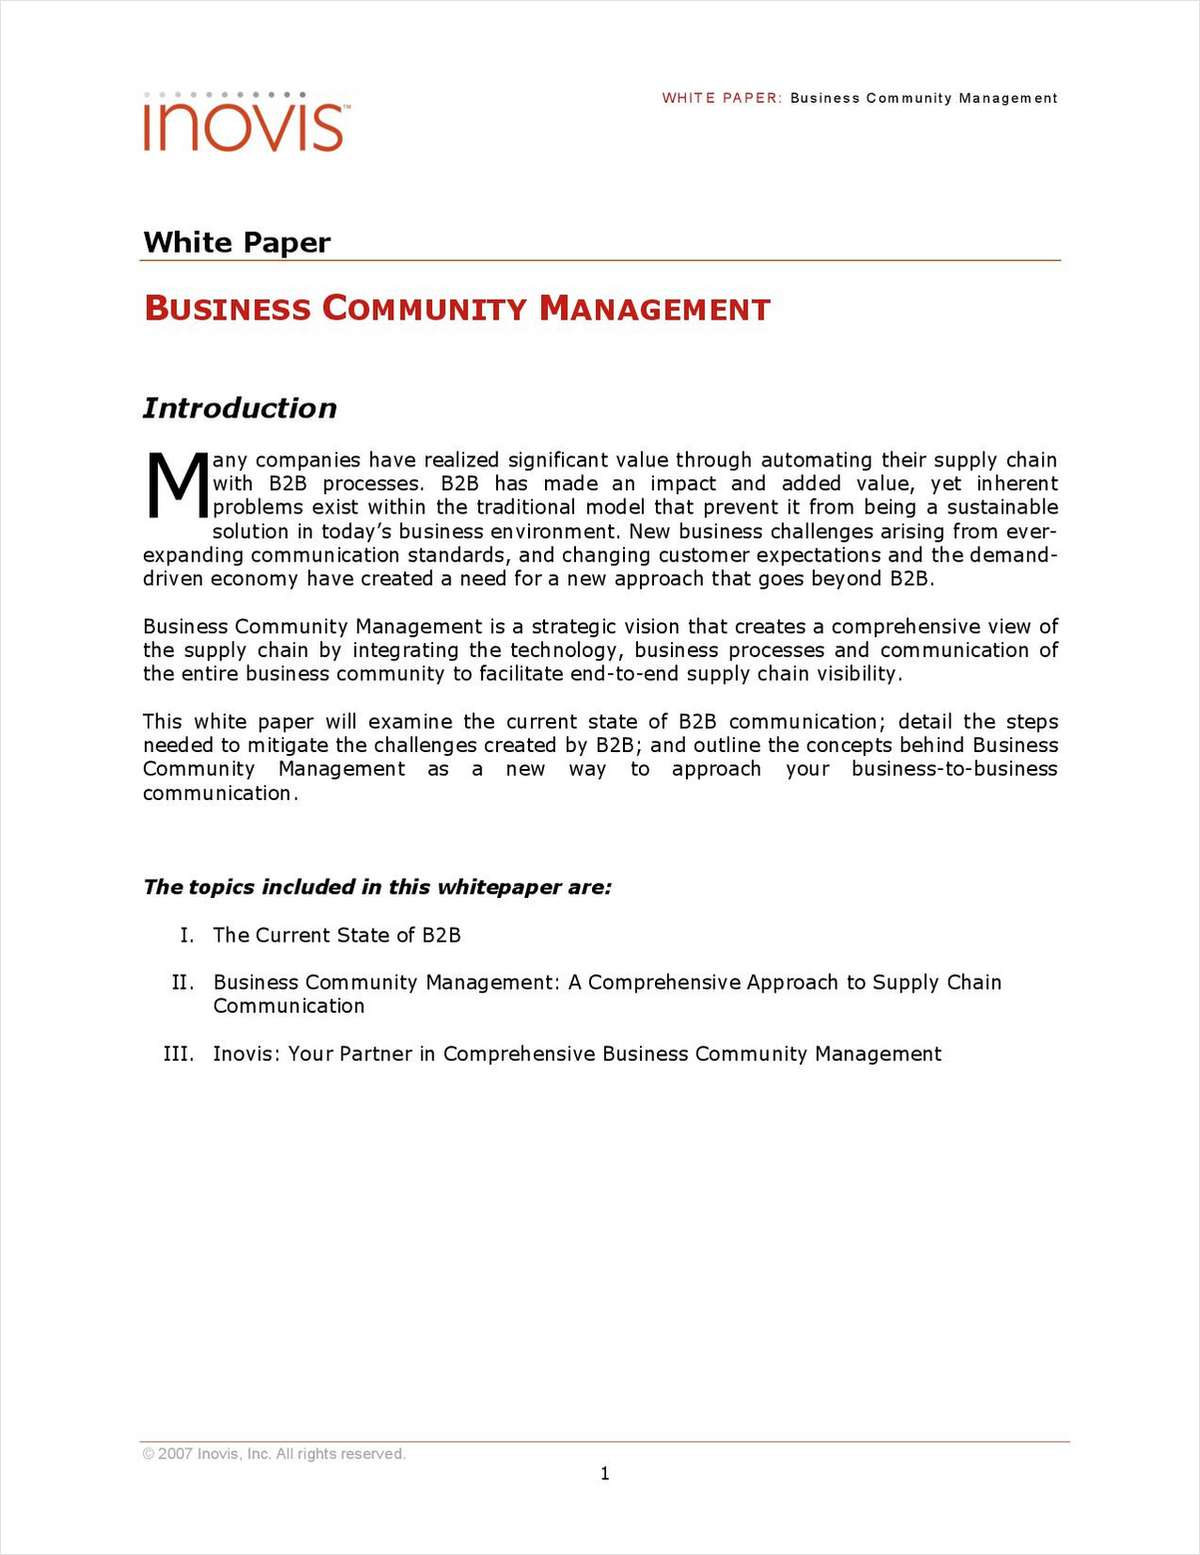 Business Community Management